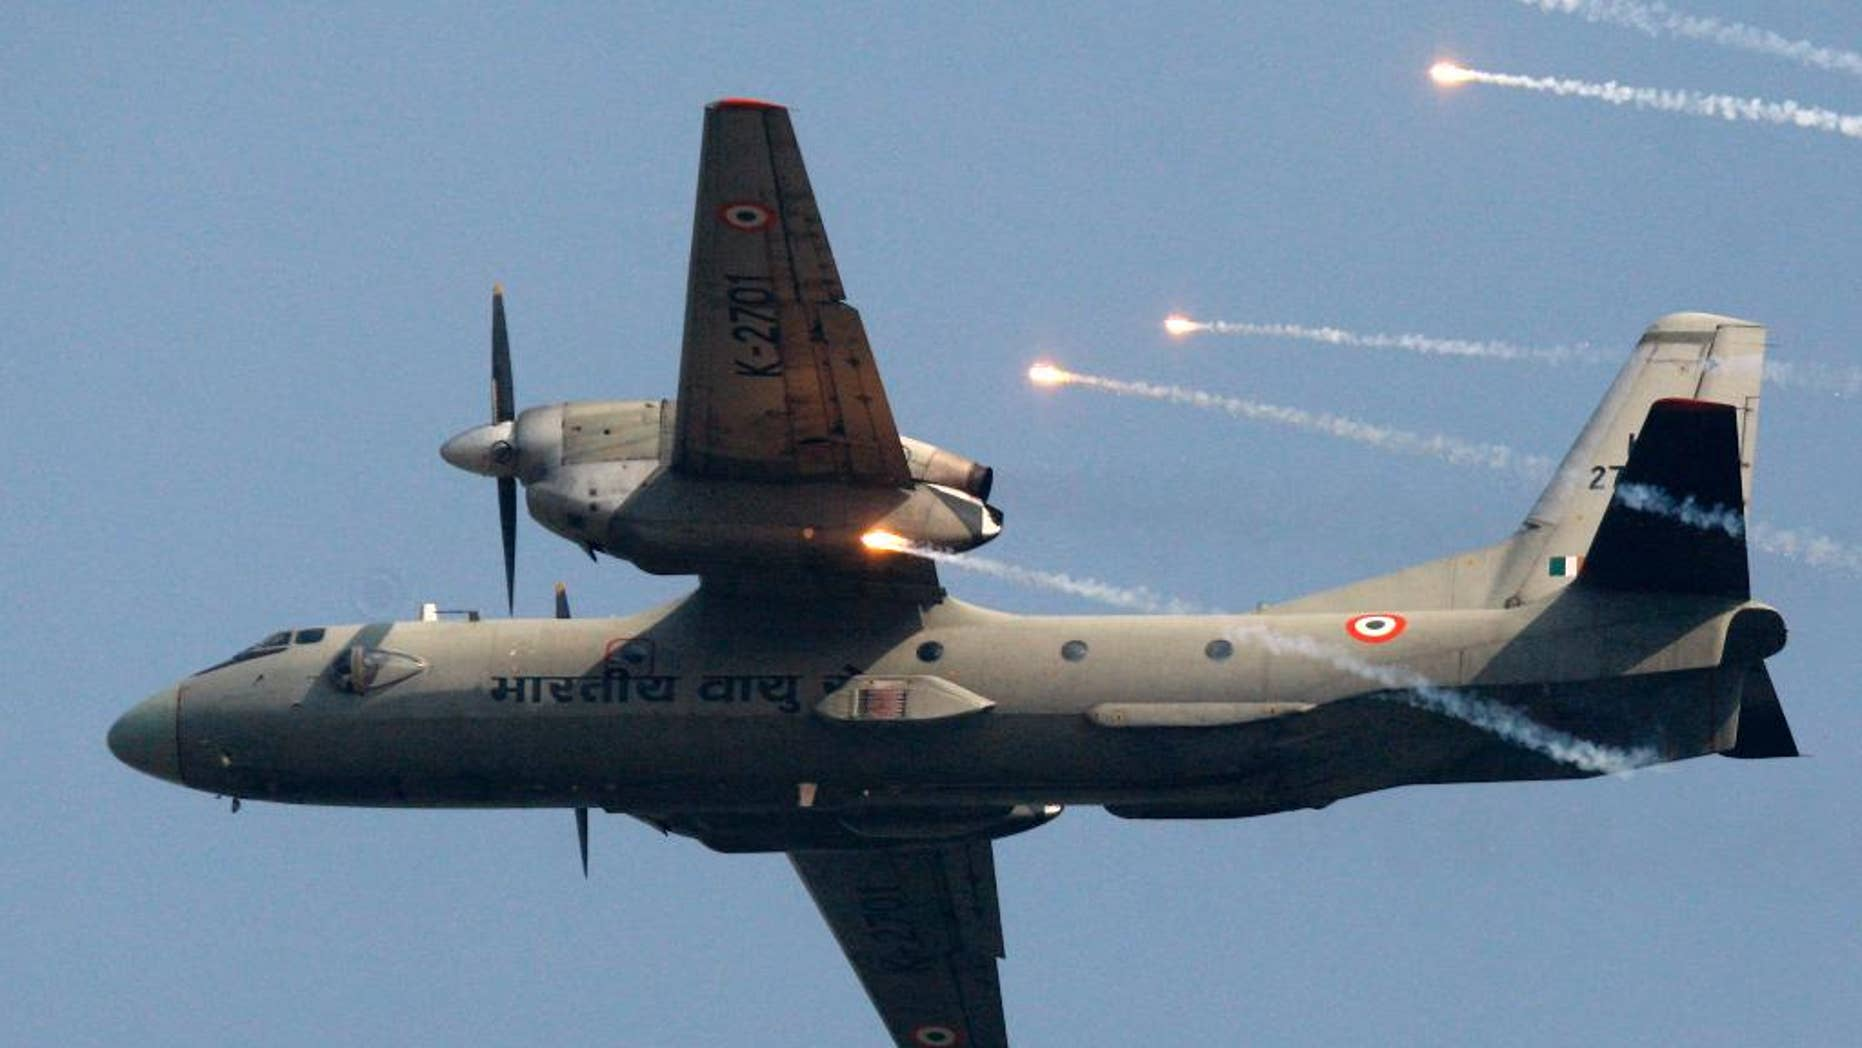 FILE- In this Thursday, Oct. 8, 2009, file photo, an Indian Air Force's (IAF) AN-32 transport aircraft releases chaff as it flies past the IAF Day Parade in New Delhi, India. A spokesman for India's defense ministry says the Indian air force has lost contact with a transport plane AN-32 with 29 people on board. A massive search by the air force, navy and coast guard has been launched. (AP Photo/Mustafa Quraishi, file)